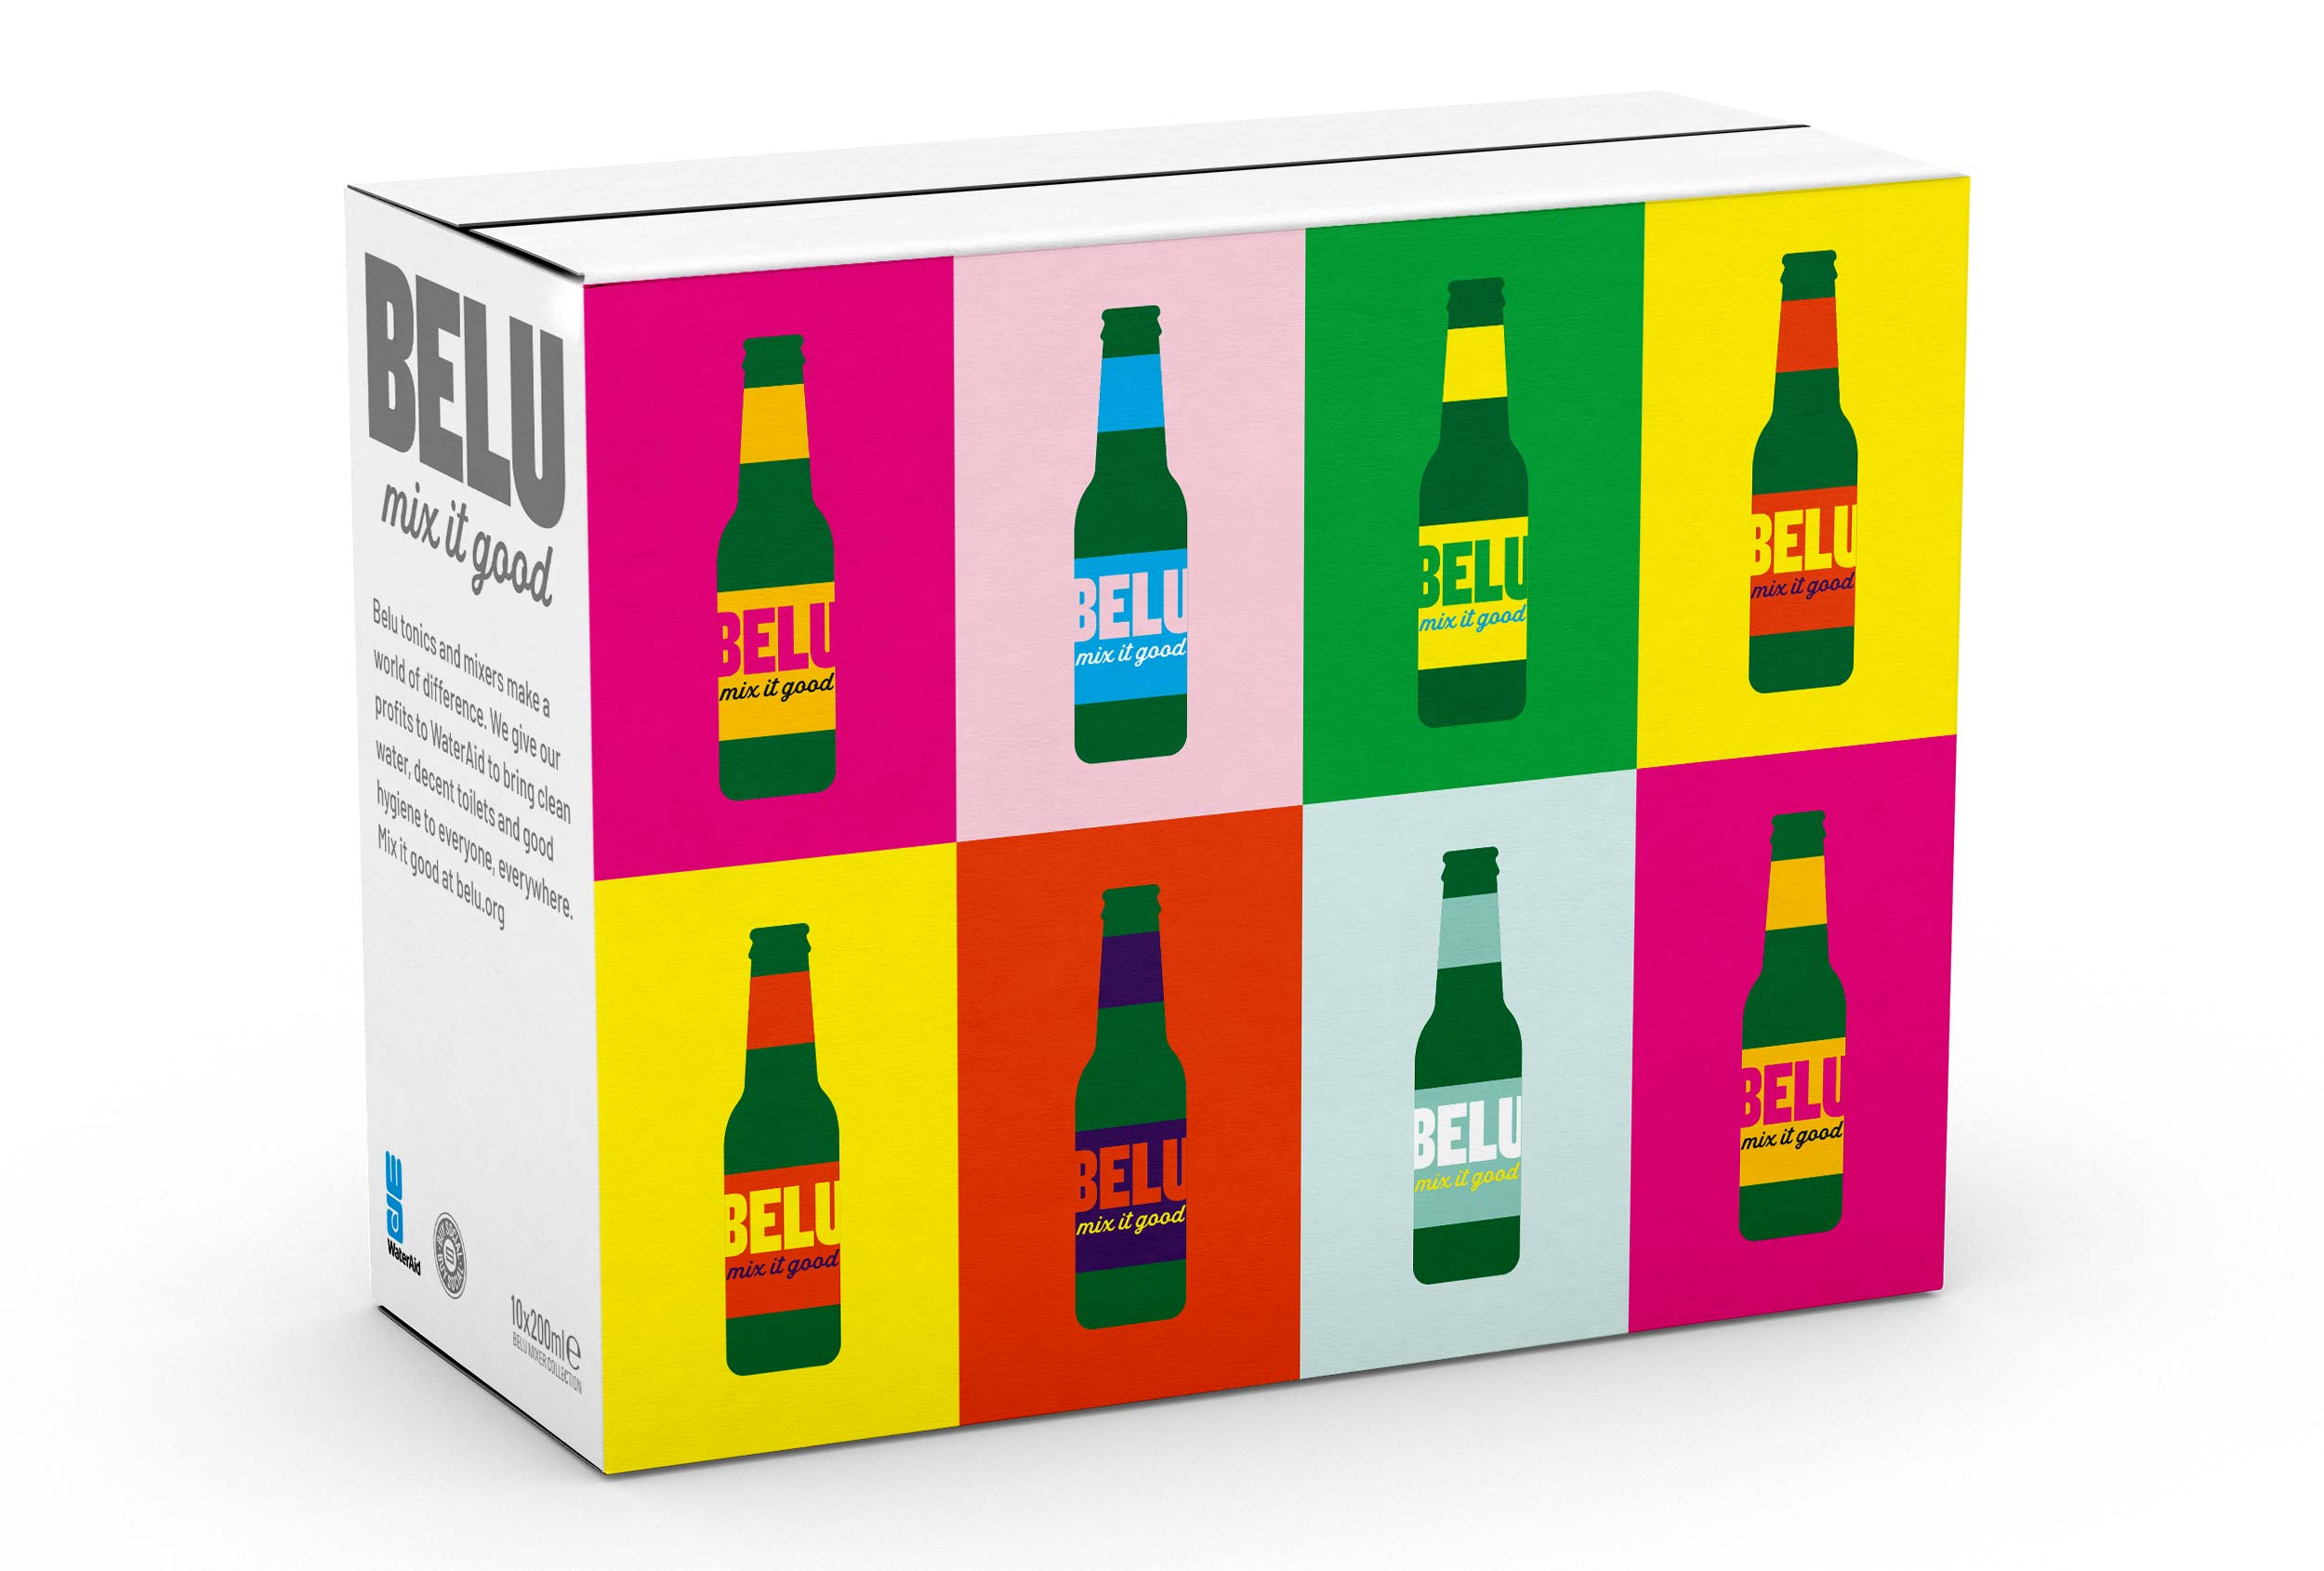 Graphic branded pattern for Belu mixers, designed by Distil Studio.